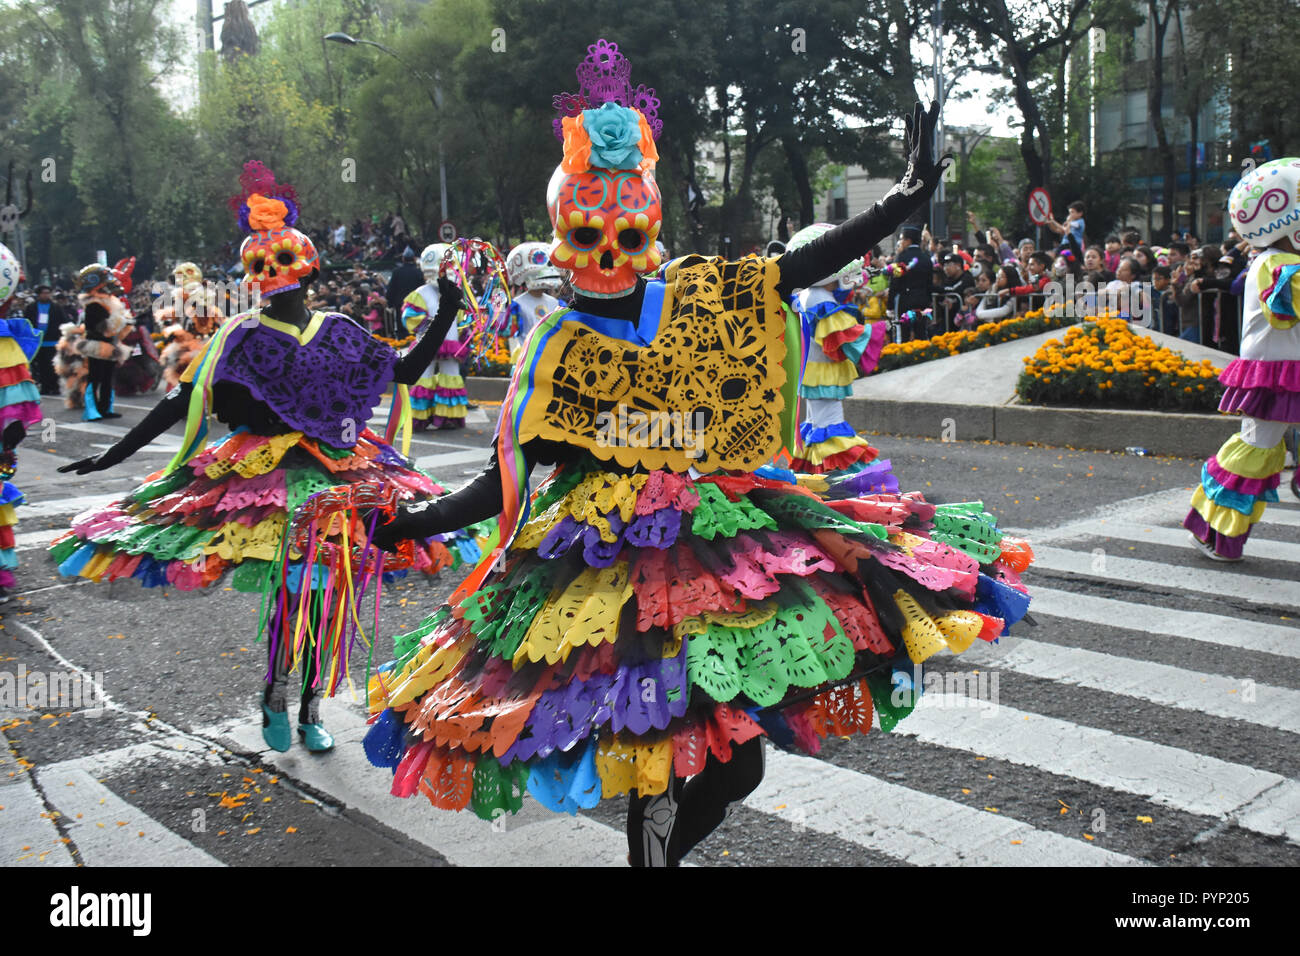 Mexico City Mexico 27th Oct 2018 A Participant Seen Dressed Up As The Dead During The